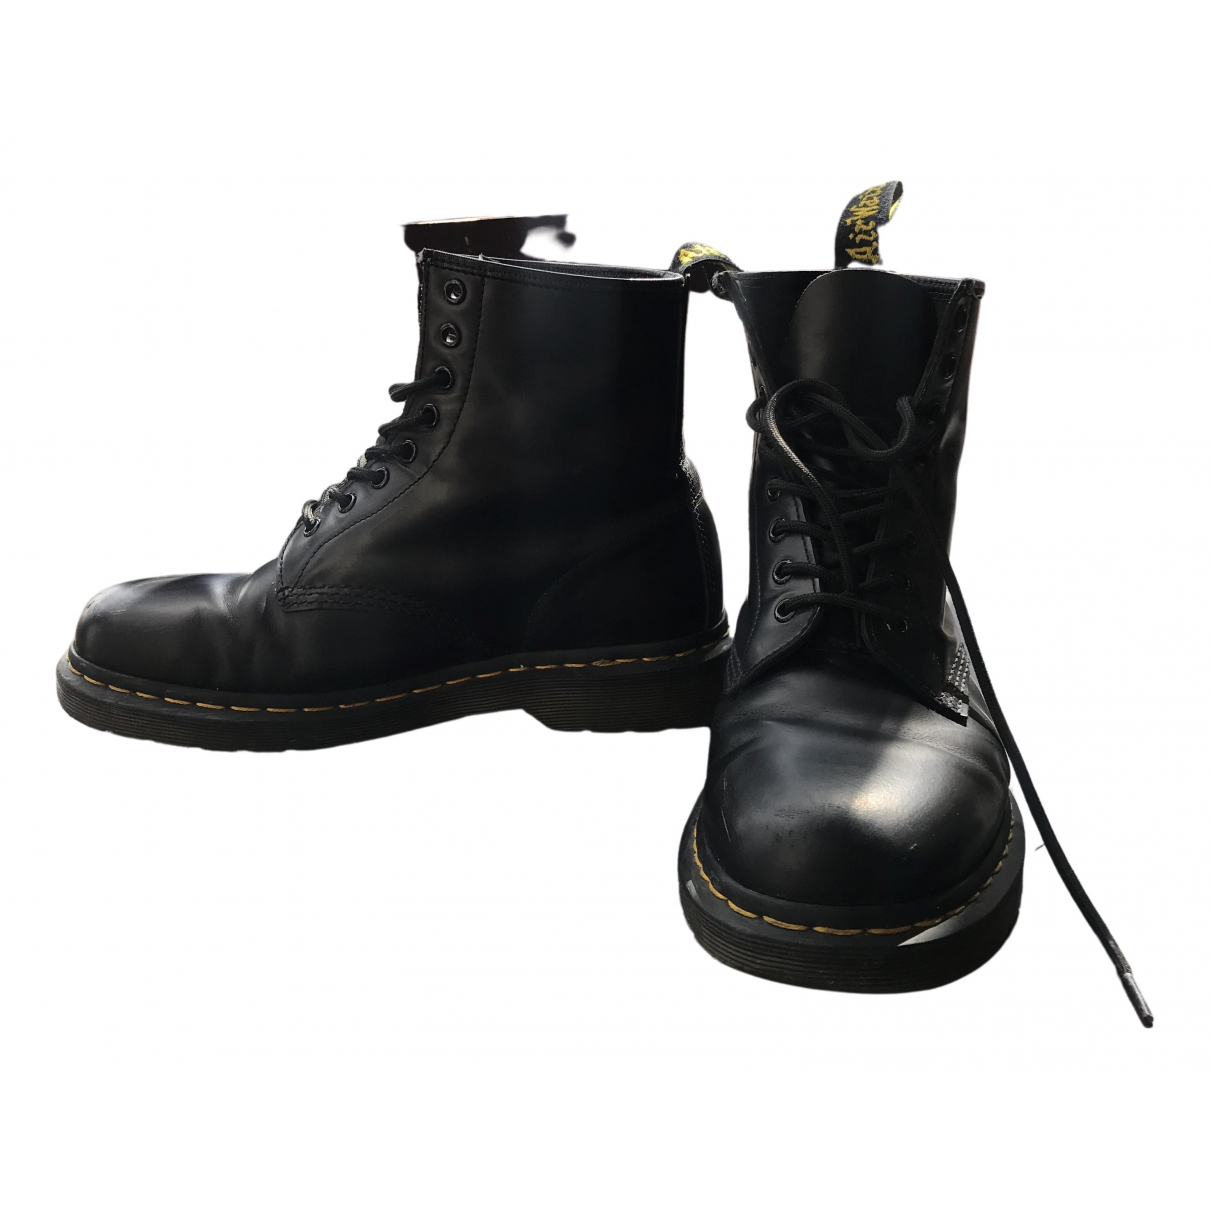 Dr. Martens 1460 Pascal (8 eye) Black Leather Boots for Women 42 EU